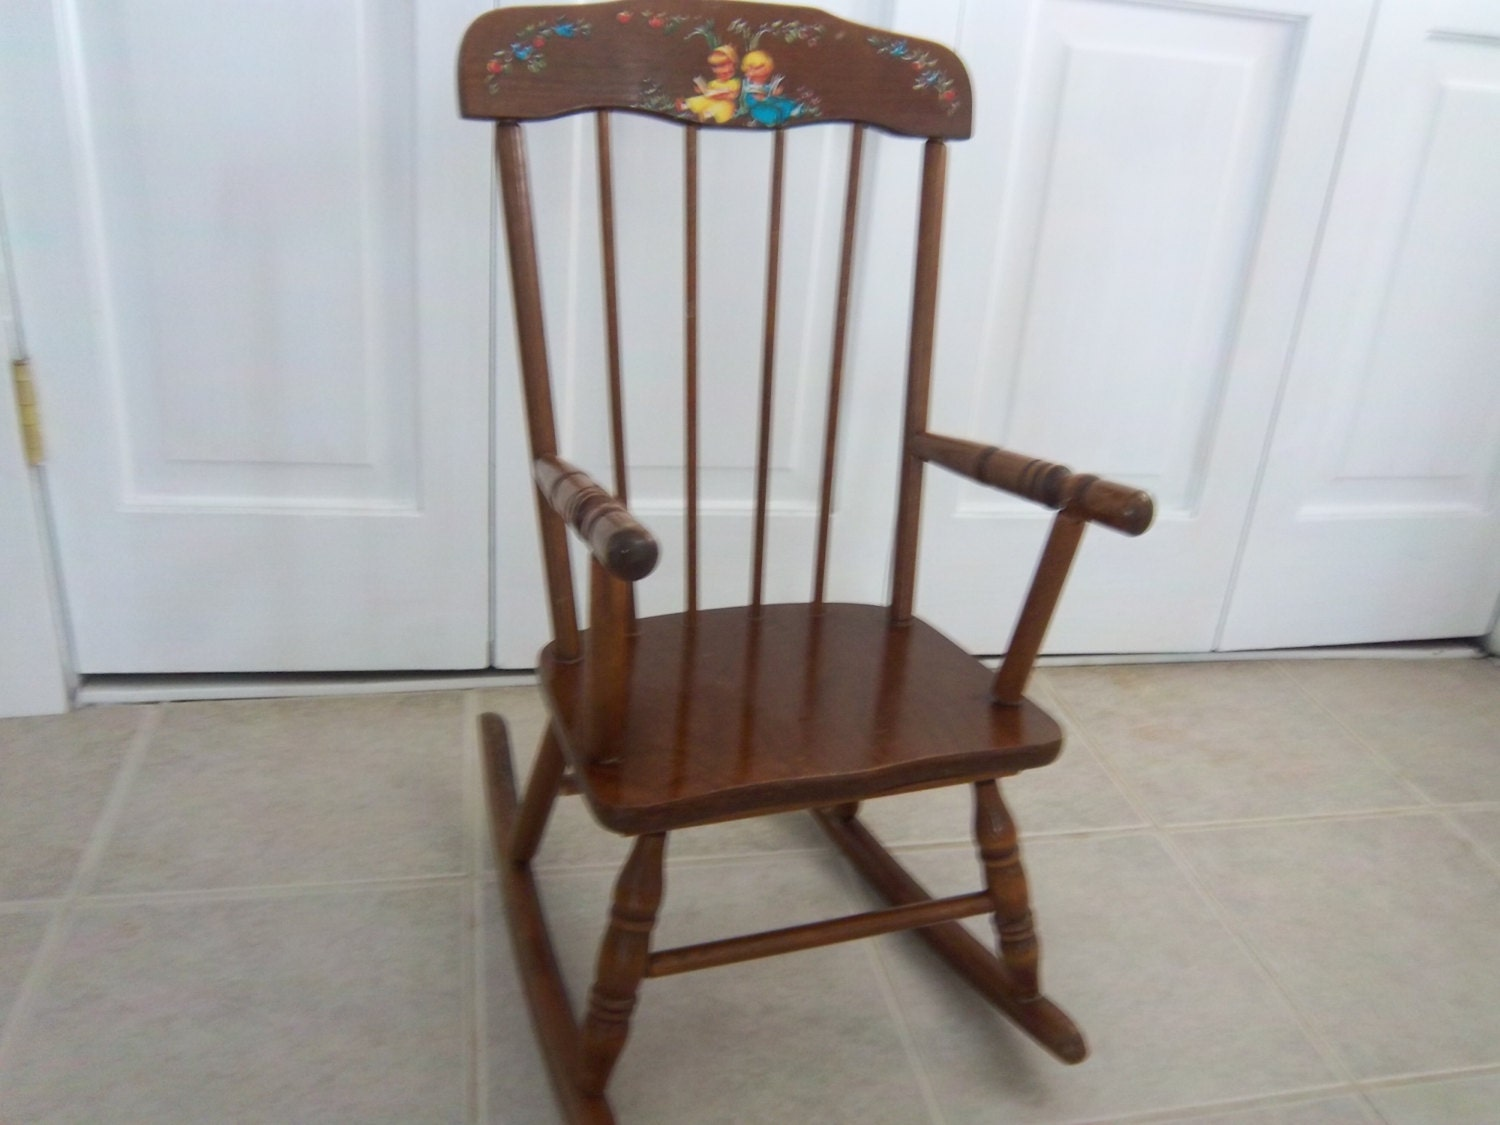 Enjoyable Vintage 1960S Maple Hedstrom Childs Rocking Chair Haute Juice Beatyapartments Chair Design Images Beatyapartmentscom